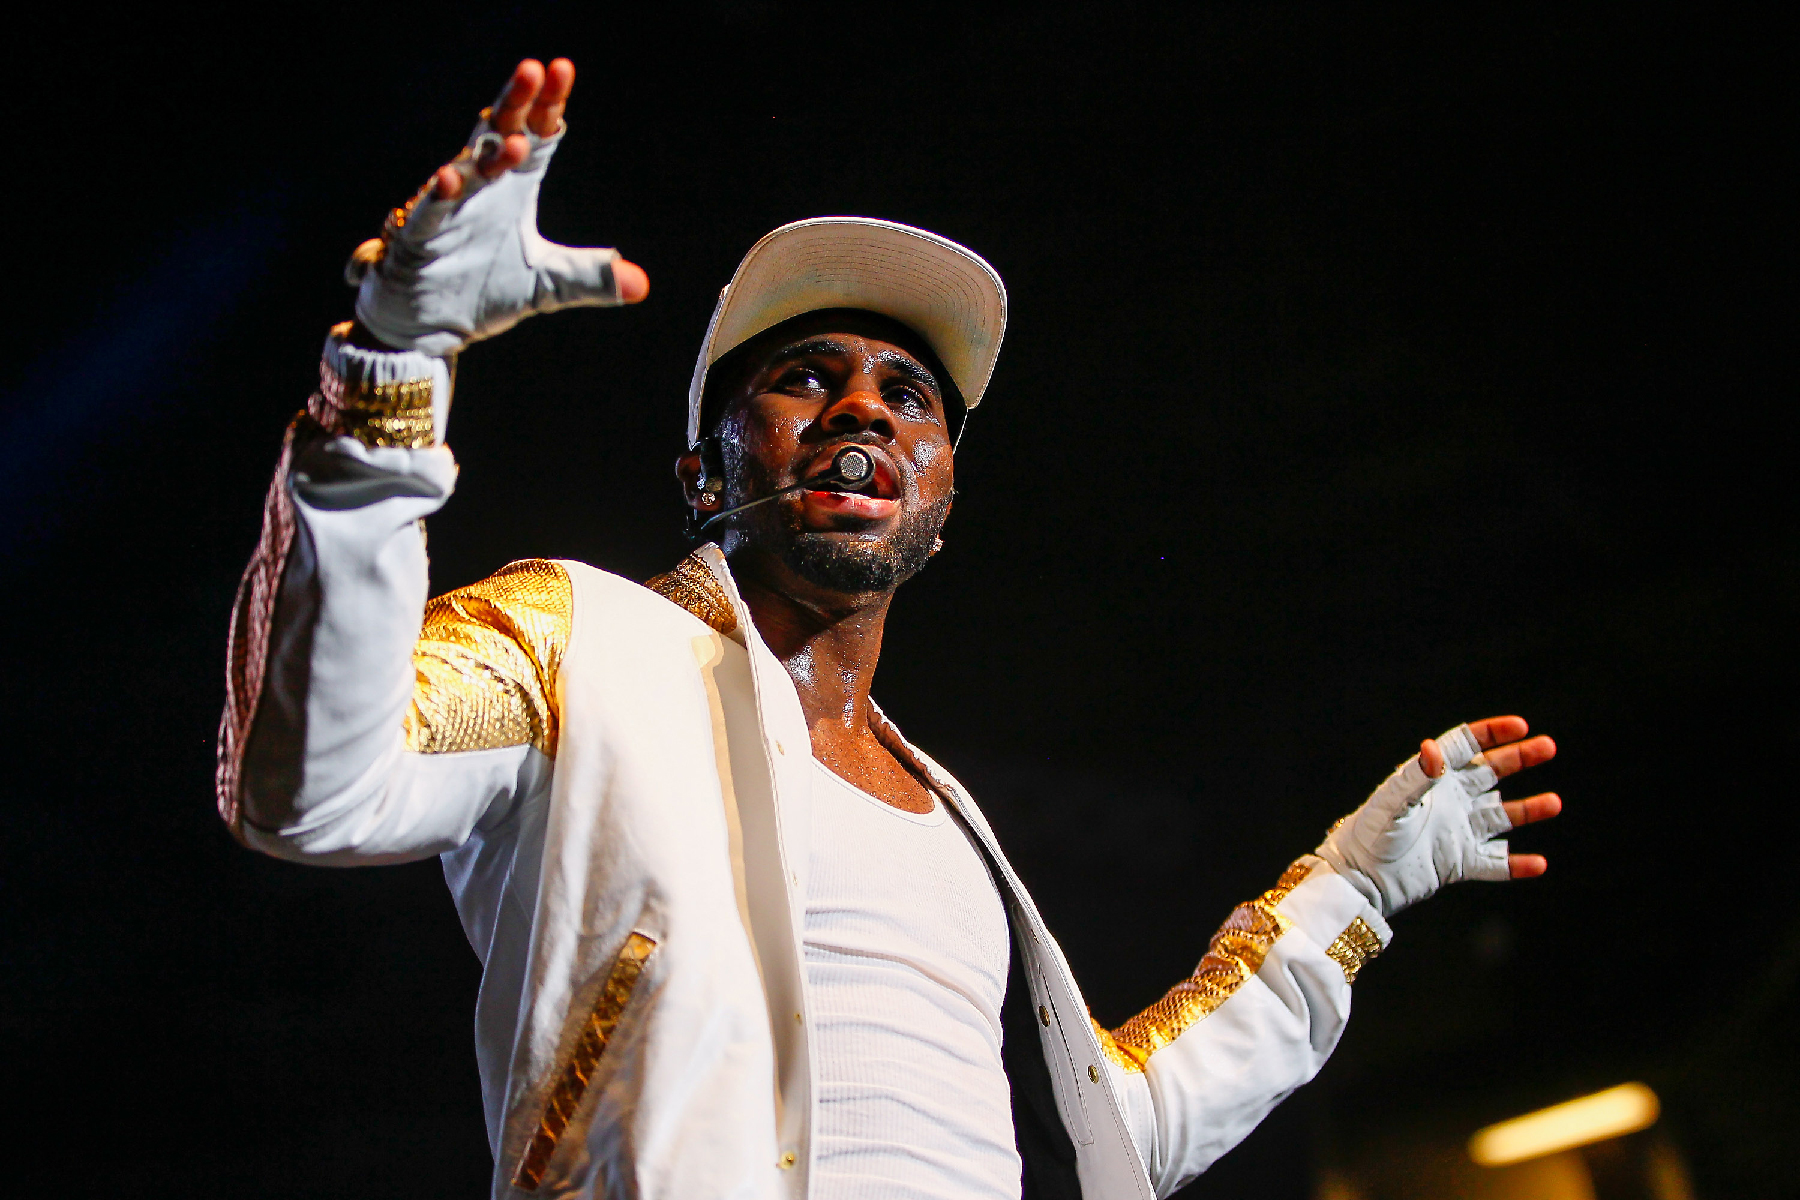 Jason Derulo Moves On: 'I'm Not About Butts Anymore'